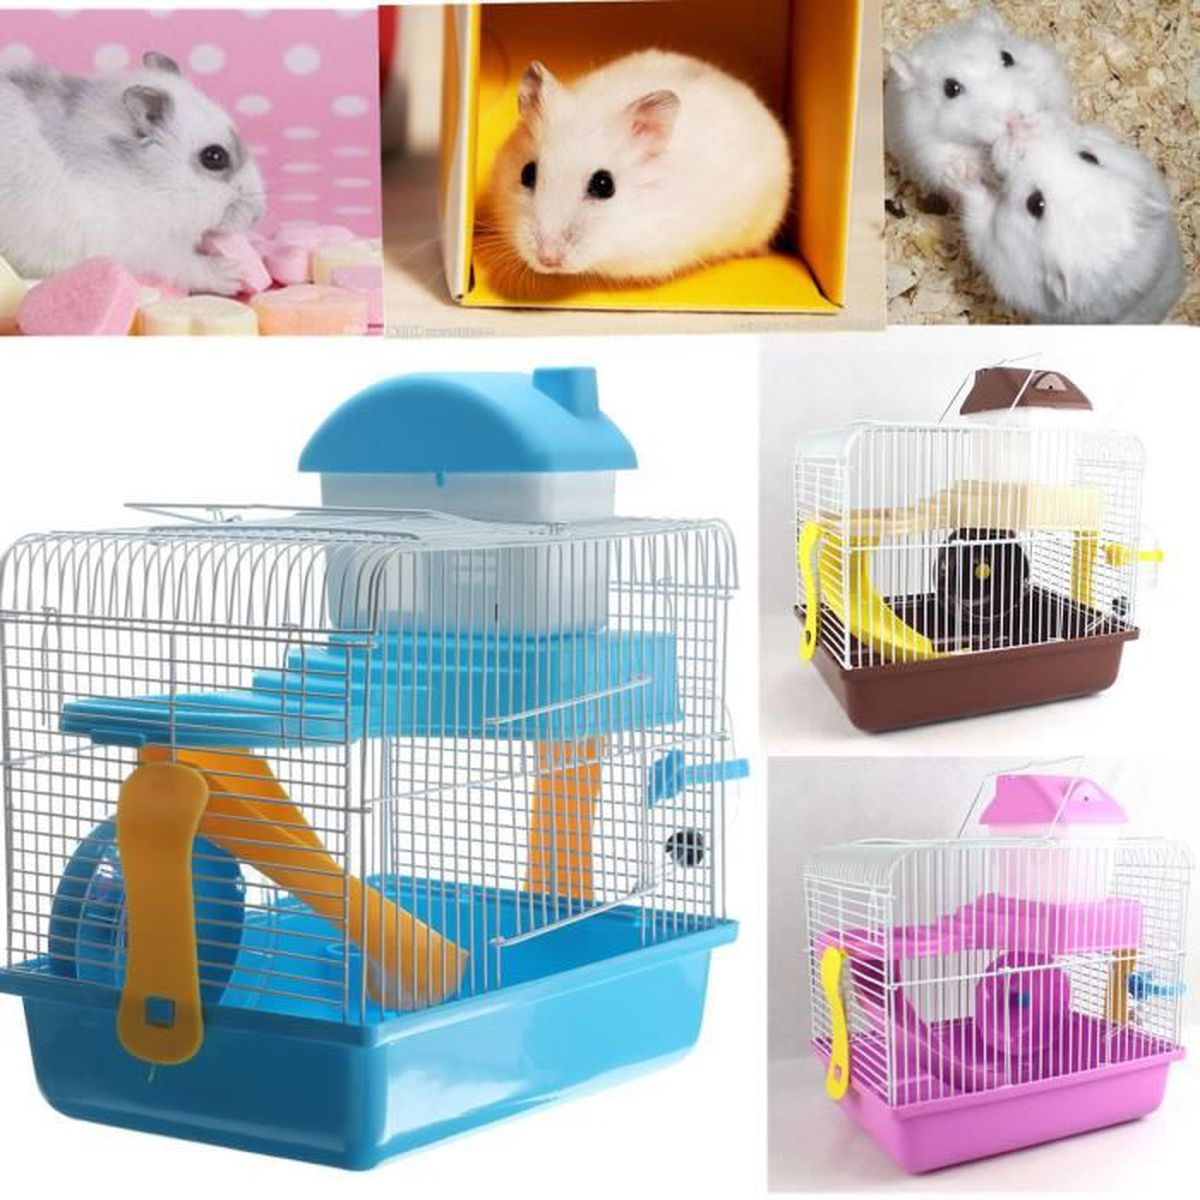 d4a0ceff5347d5 NEW Cage Hamster Rongeur Souris Gerbille Ratatouille Petit Animal ...